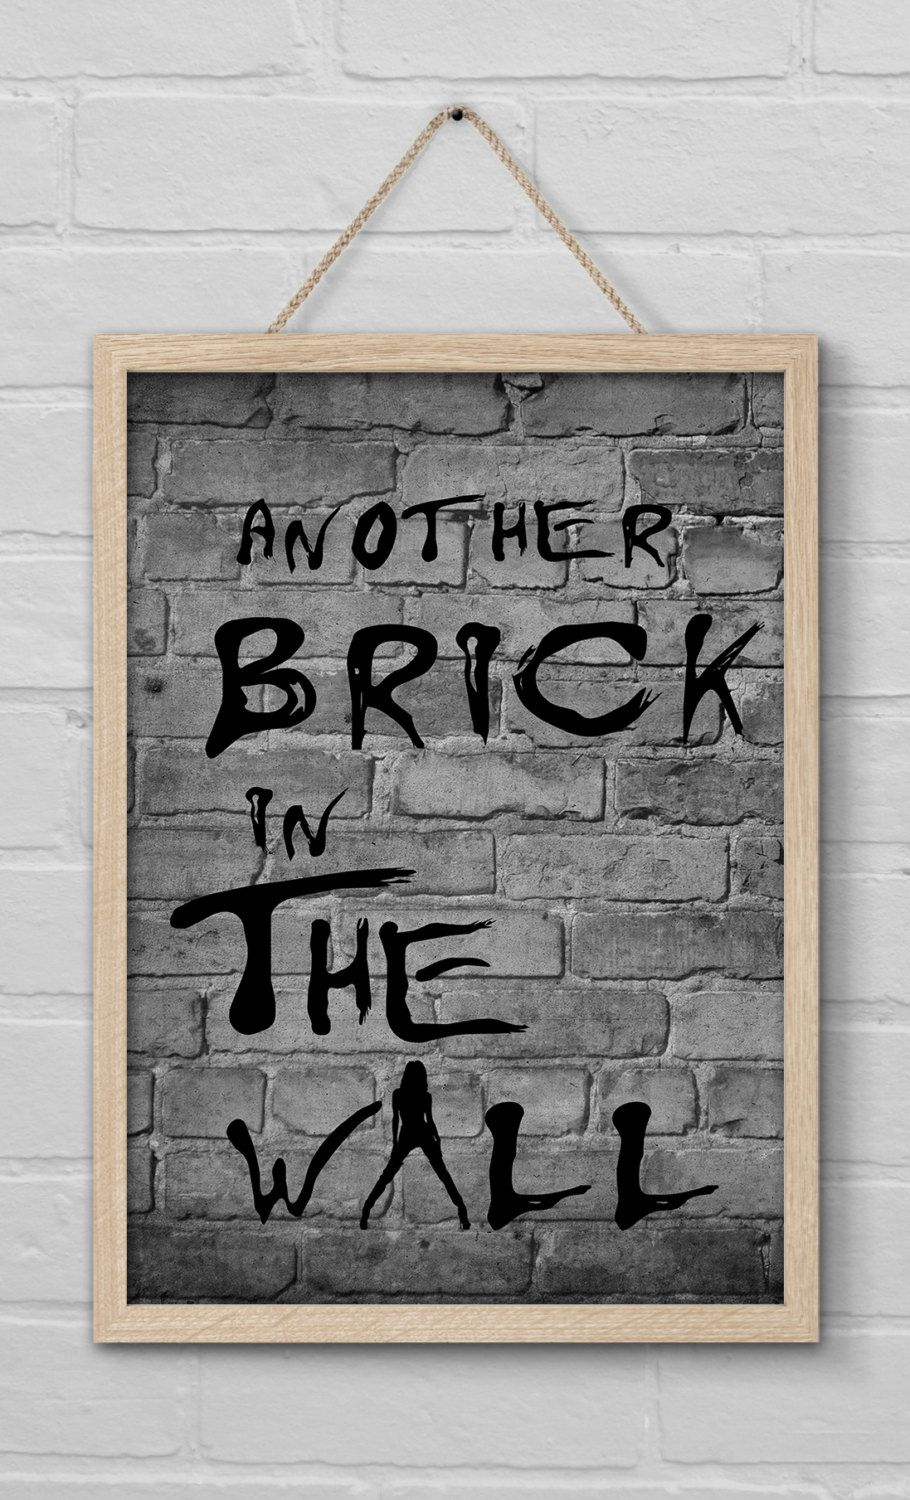 Another Brick In The Wall Pink Floyd With Lady Model Ver 2 Digital Printable Poster Quote Home Decor Wall Art Instant Download Typography By Wordsandtime On